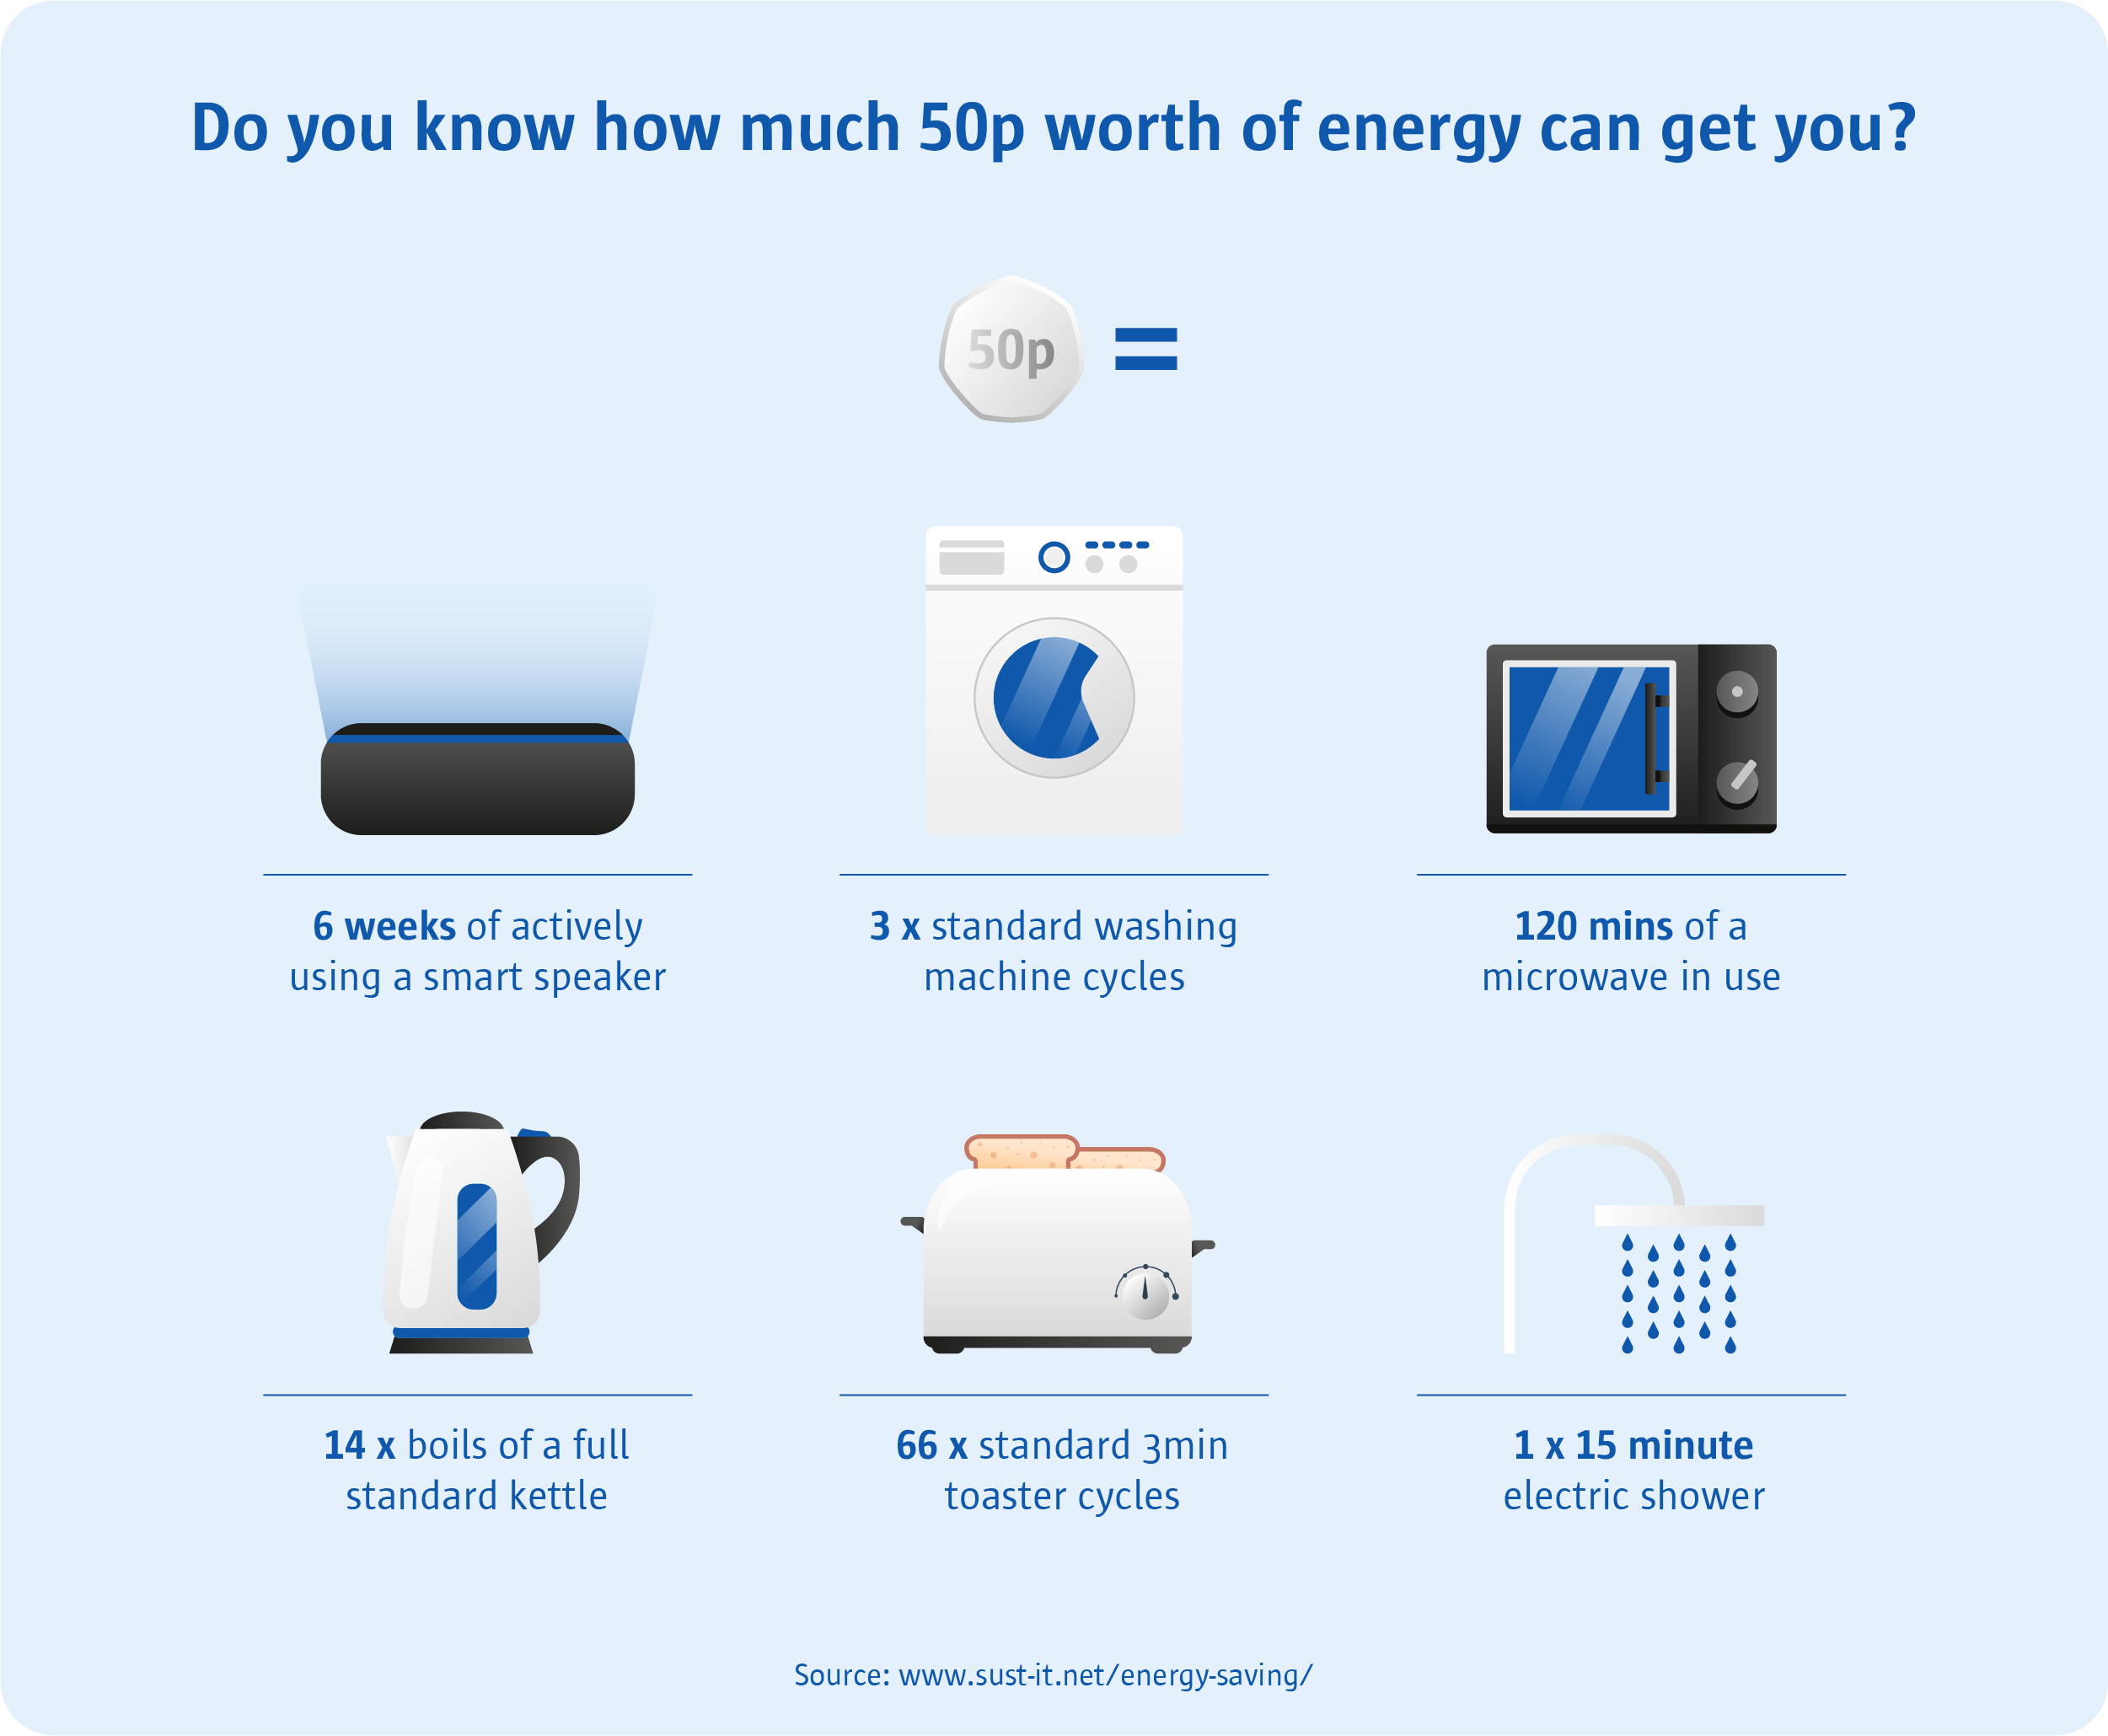 How far does 50p worth of energy go in your home?